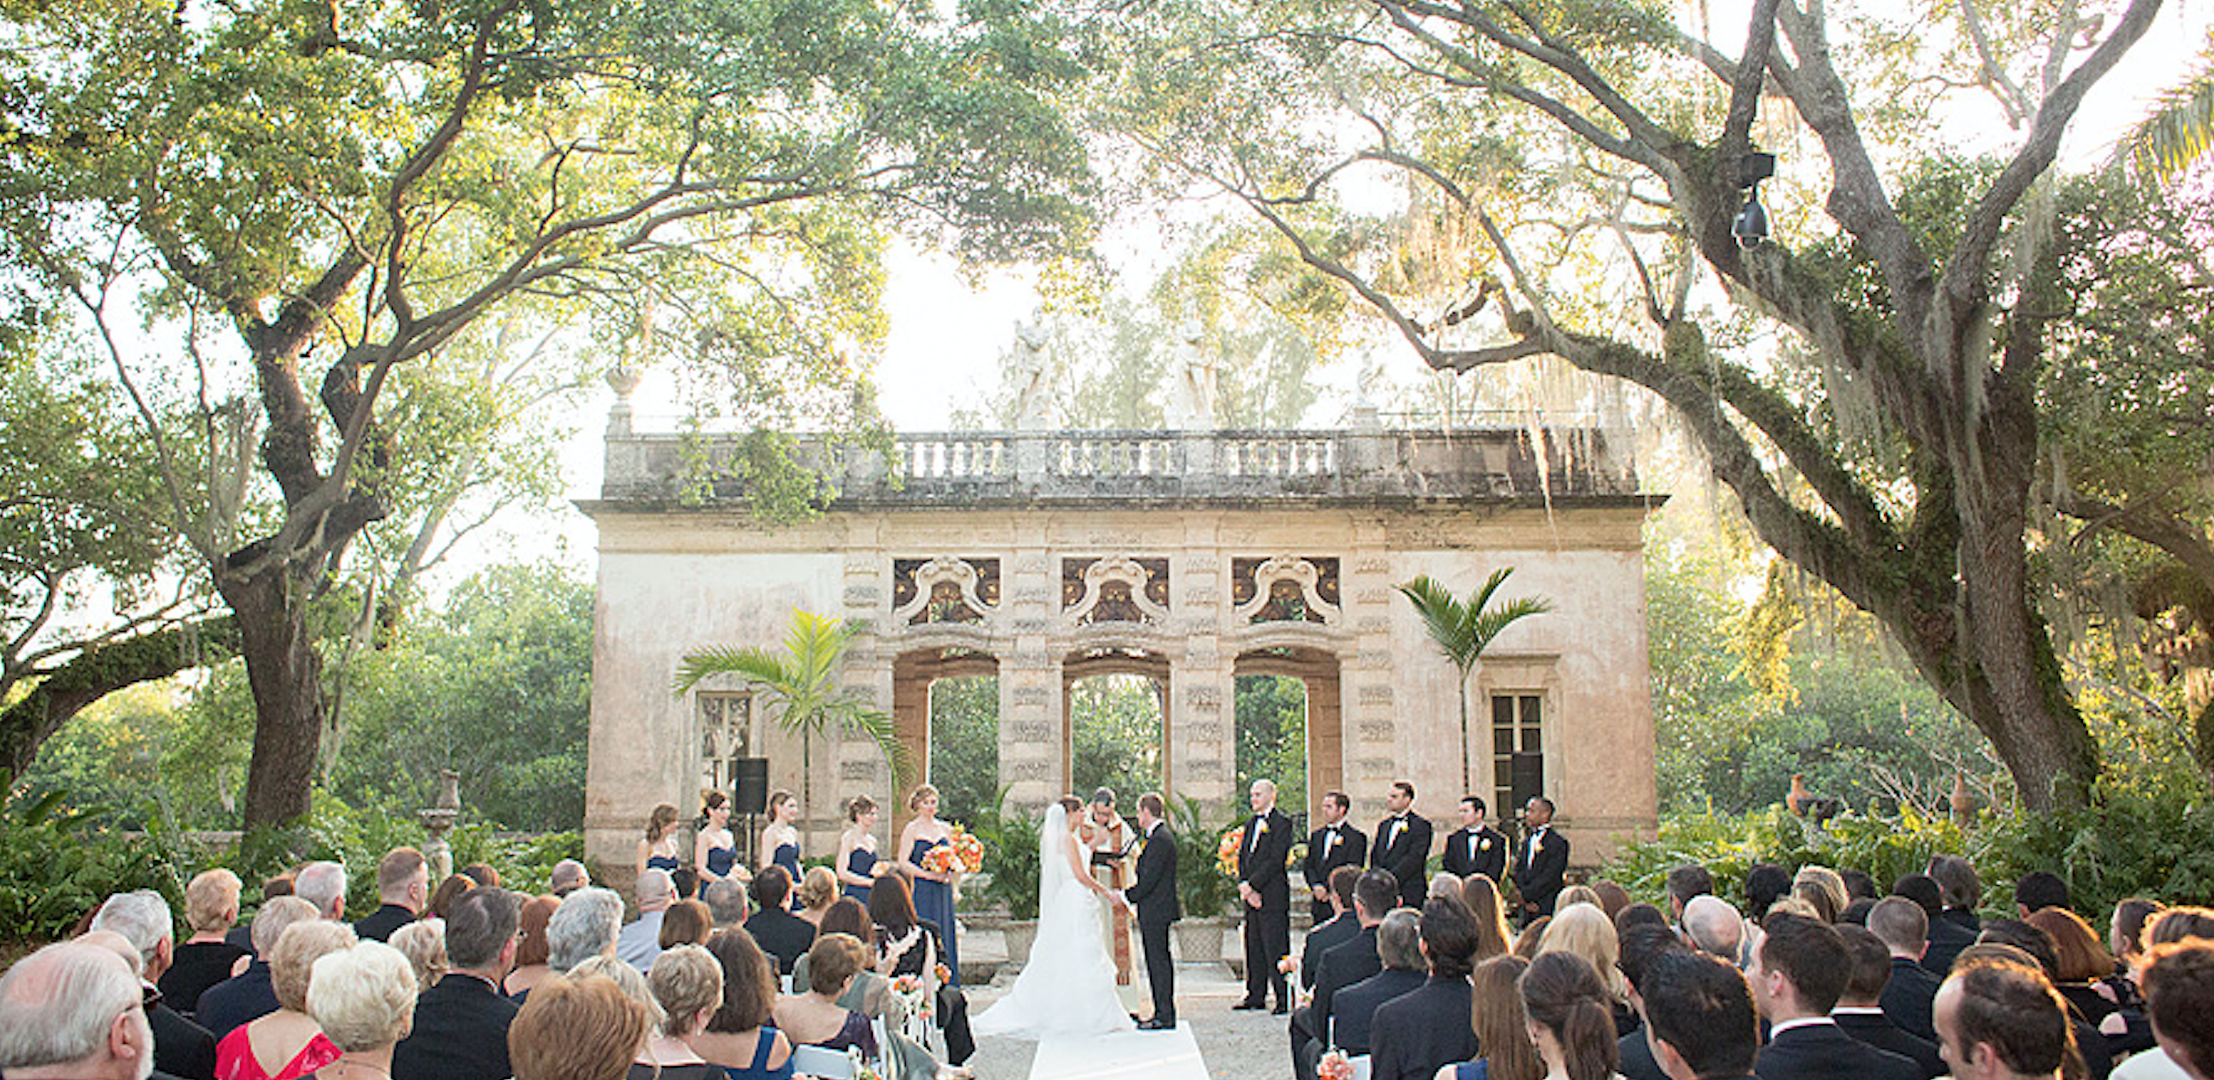 Miami top wedding venues miami wedding planner the creatives loft vizcaya museum gardens wedding venue junglespirit Images